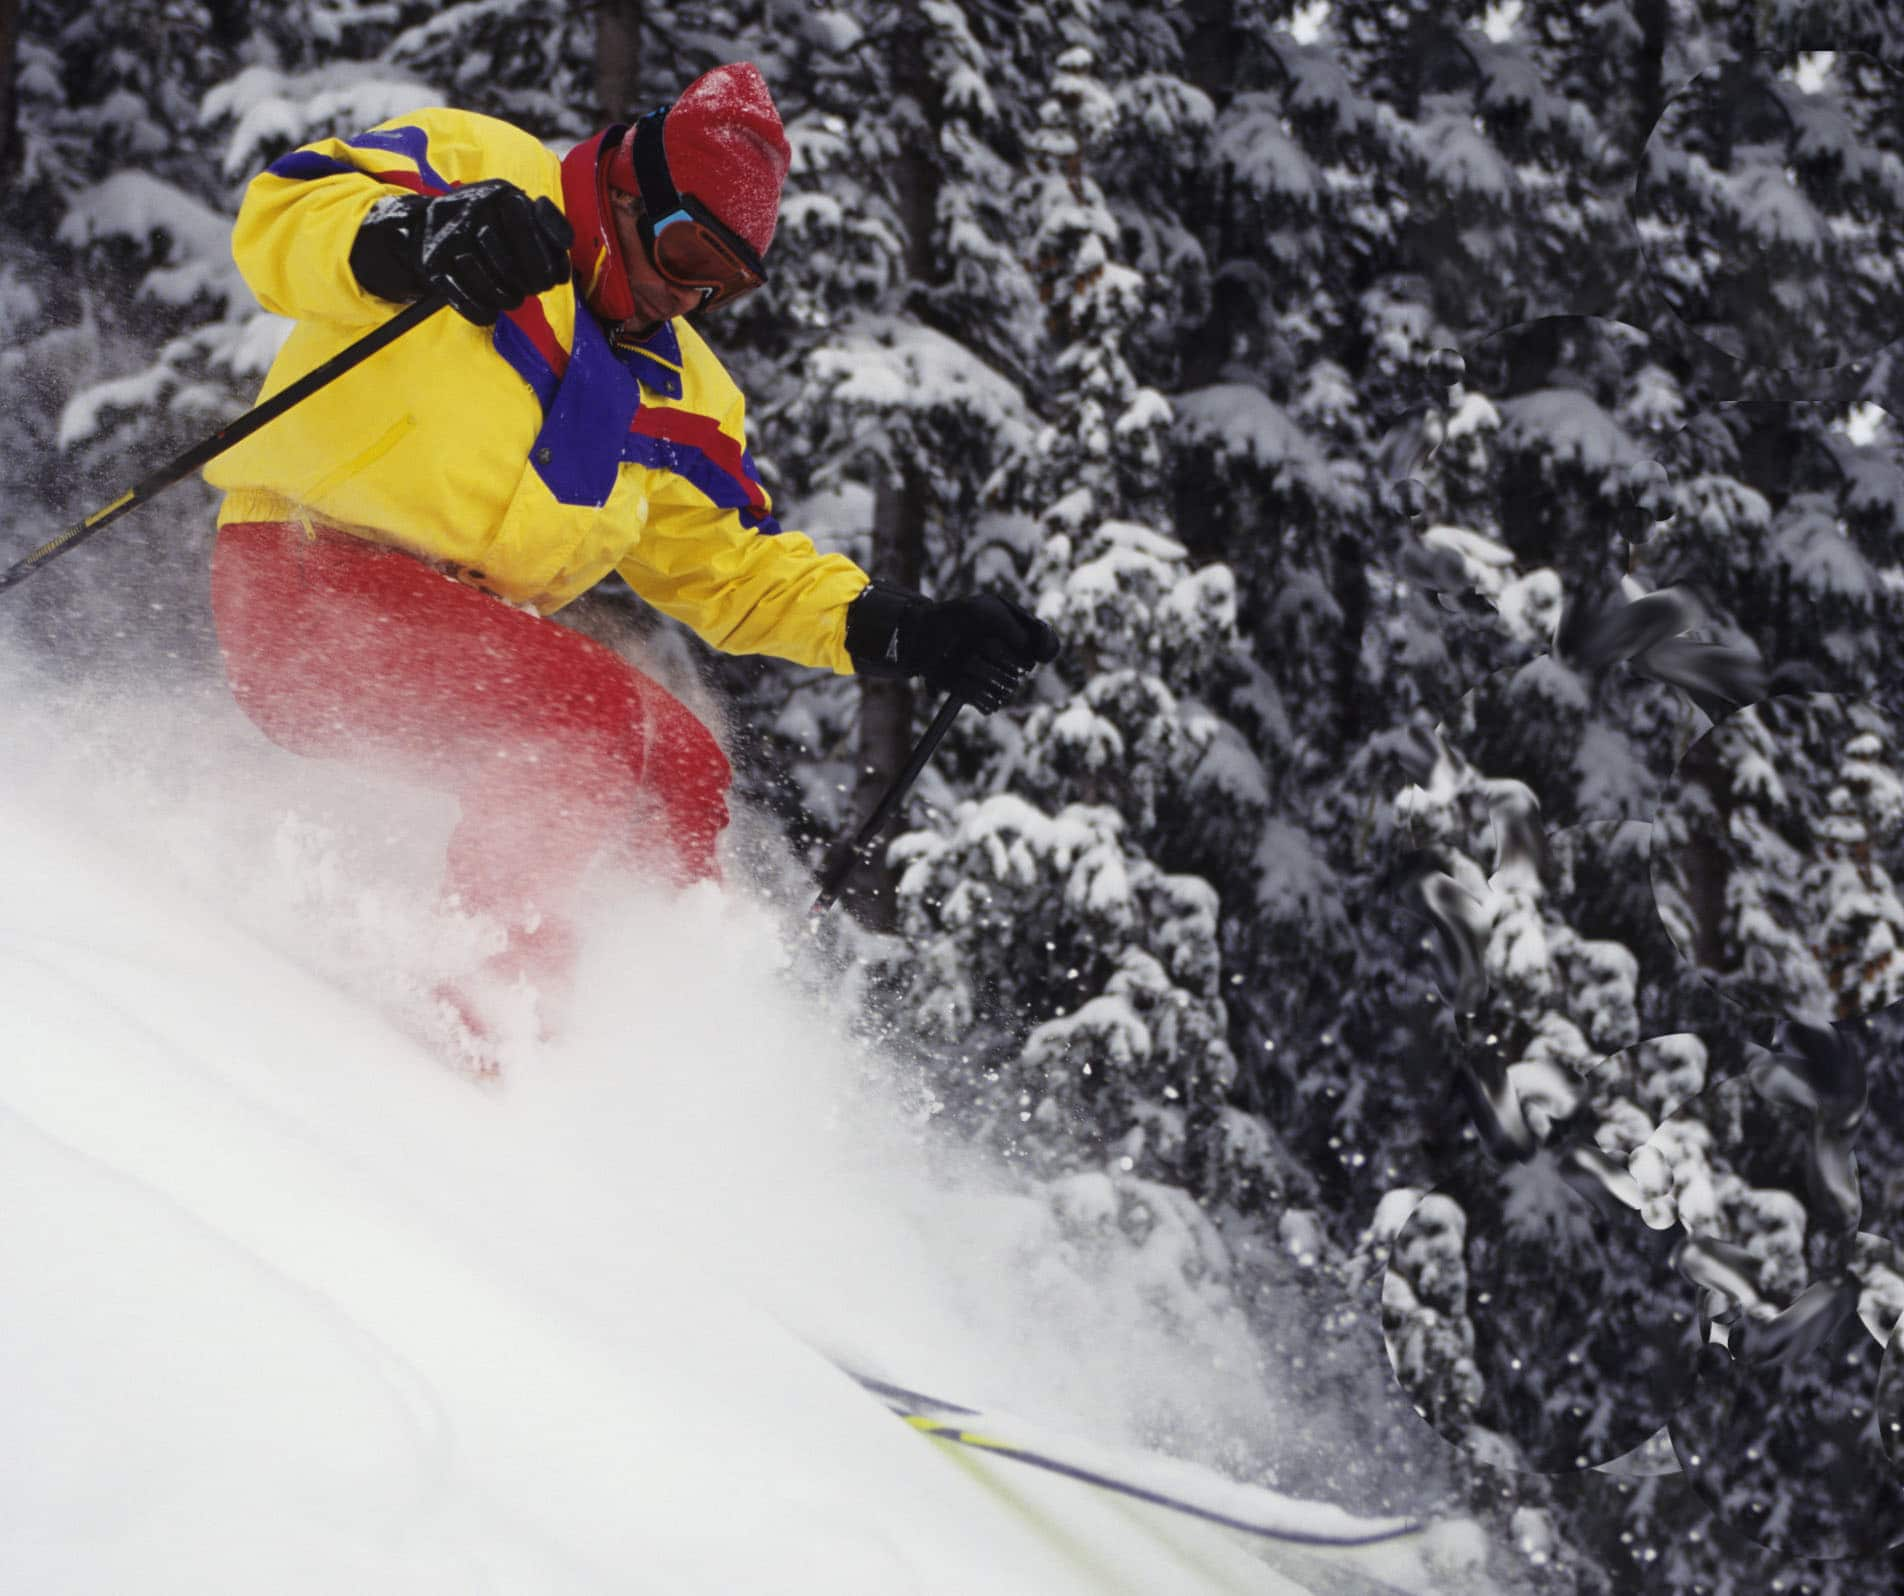 A skier in a yellow jacket traverses a steep slope.